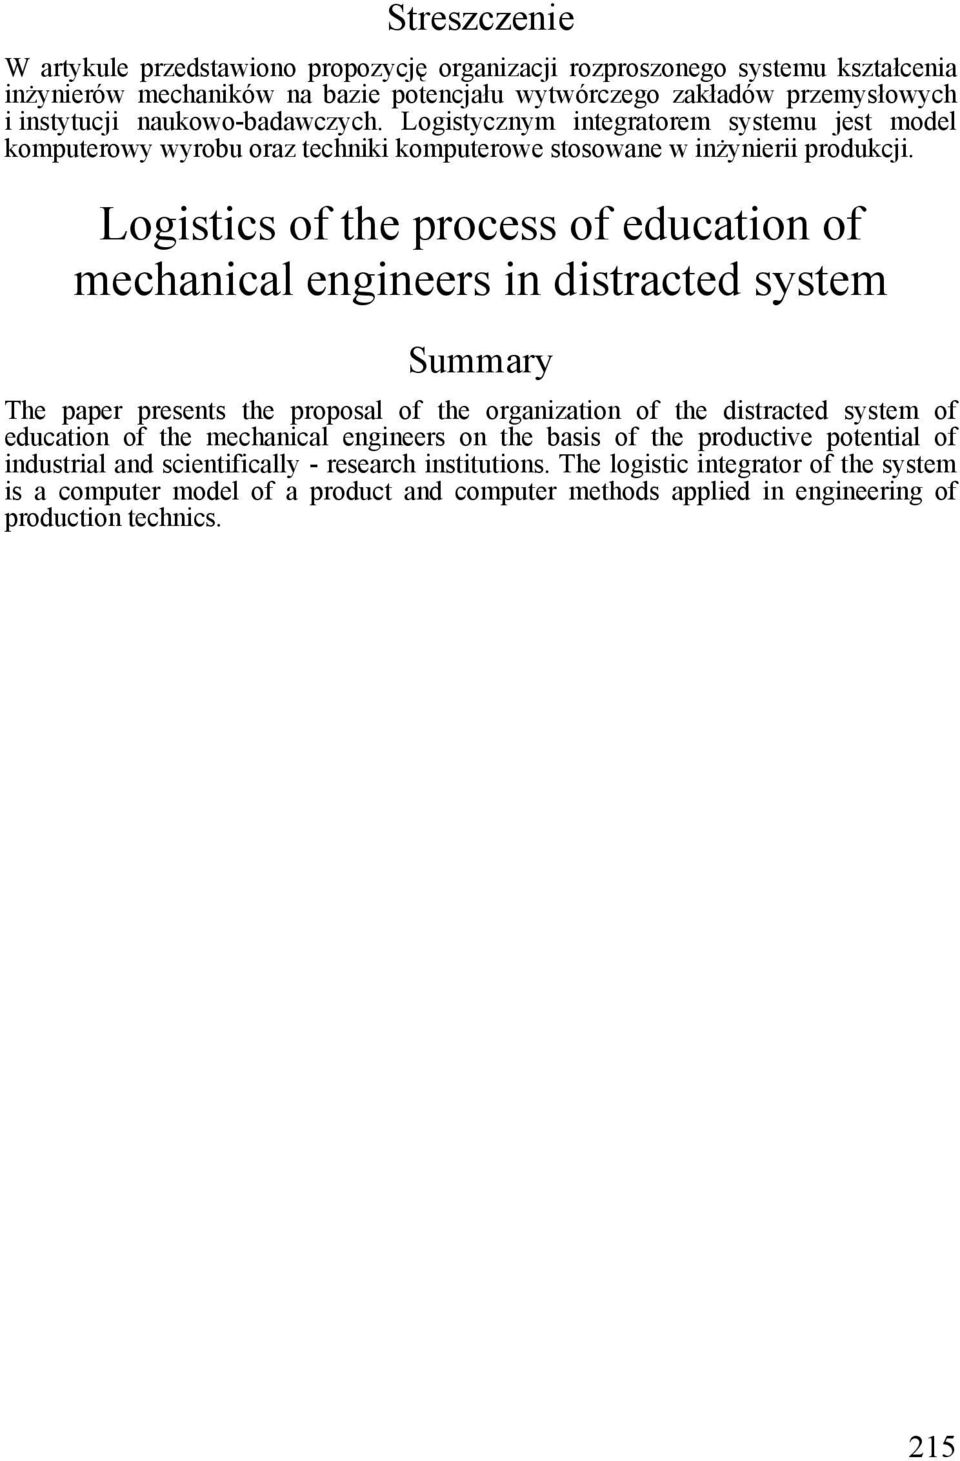 Logistics of the process of education of mechanical engineers in distracted system Summary The paper presents the proposal of the organization of the distracted system of education of the